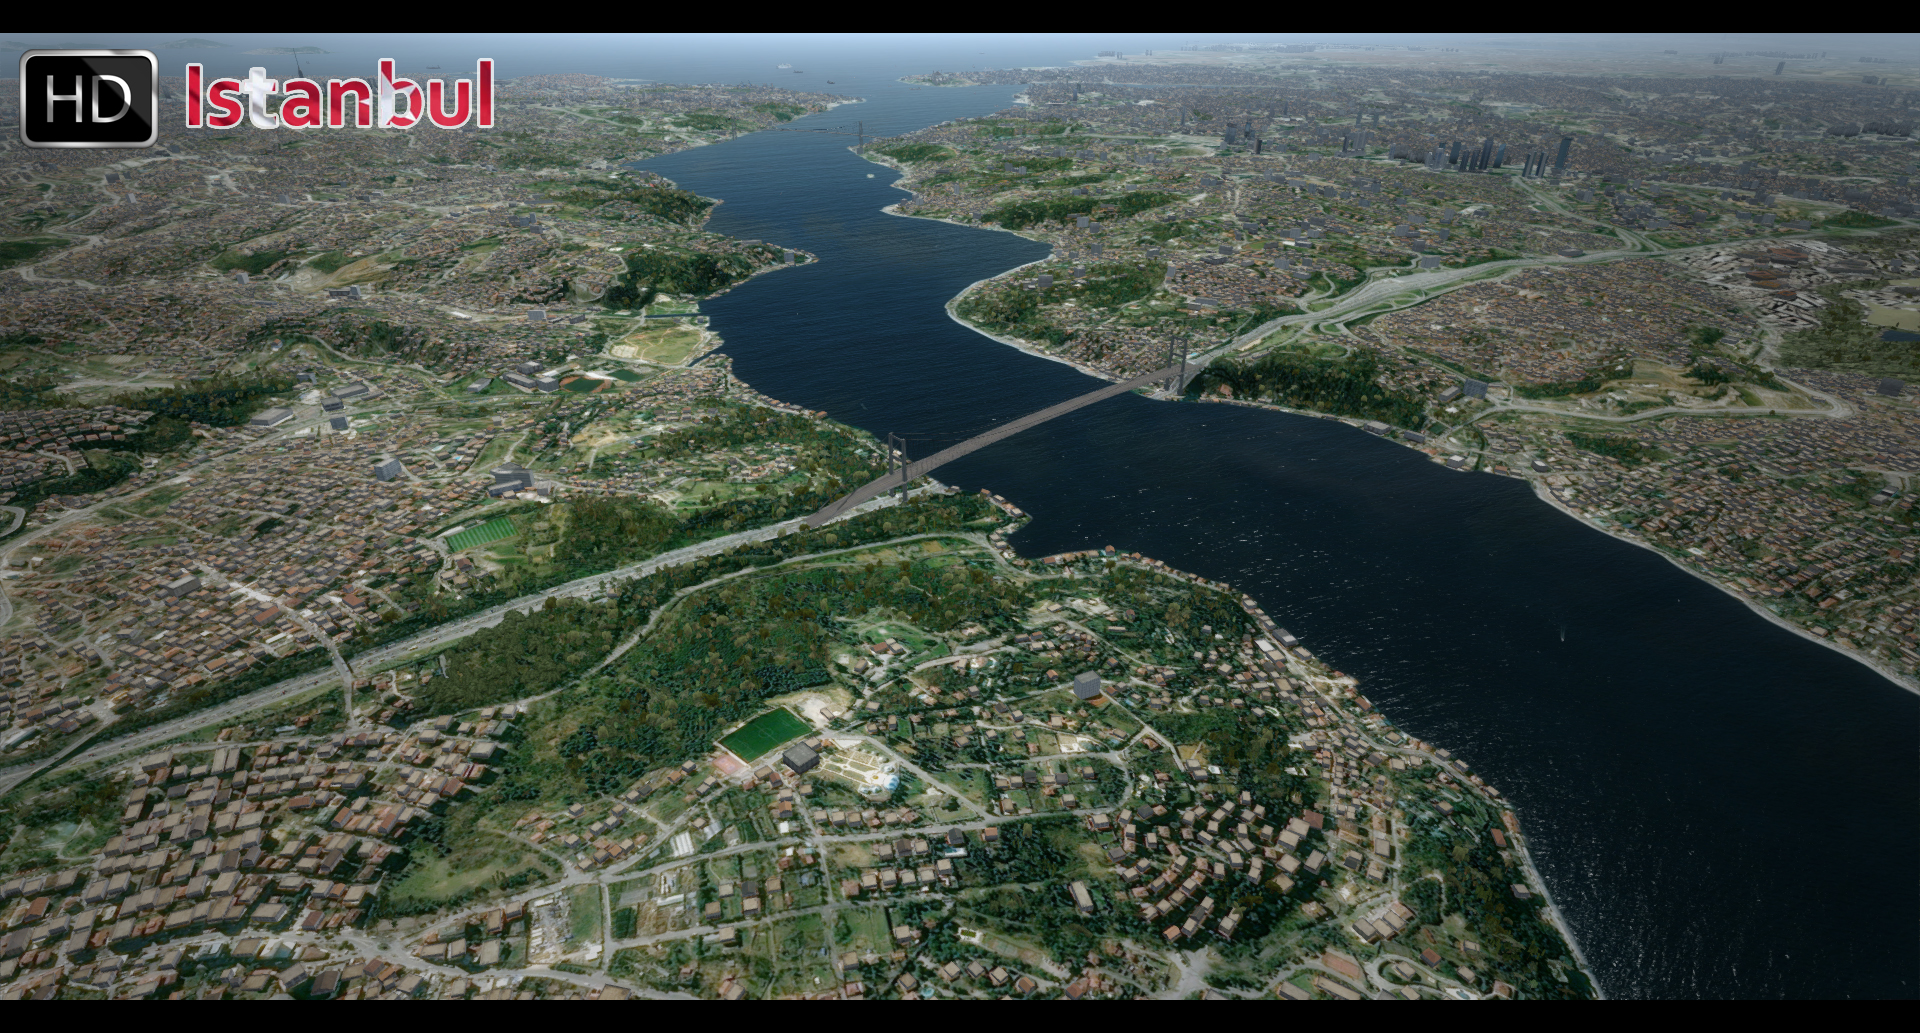 PREALSOFT - HD CITIES ISTANBUL FSX P3D